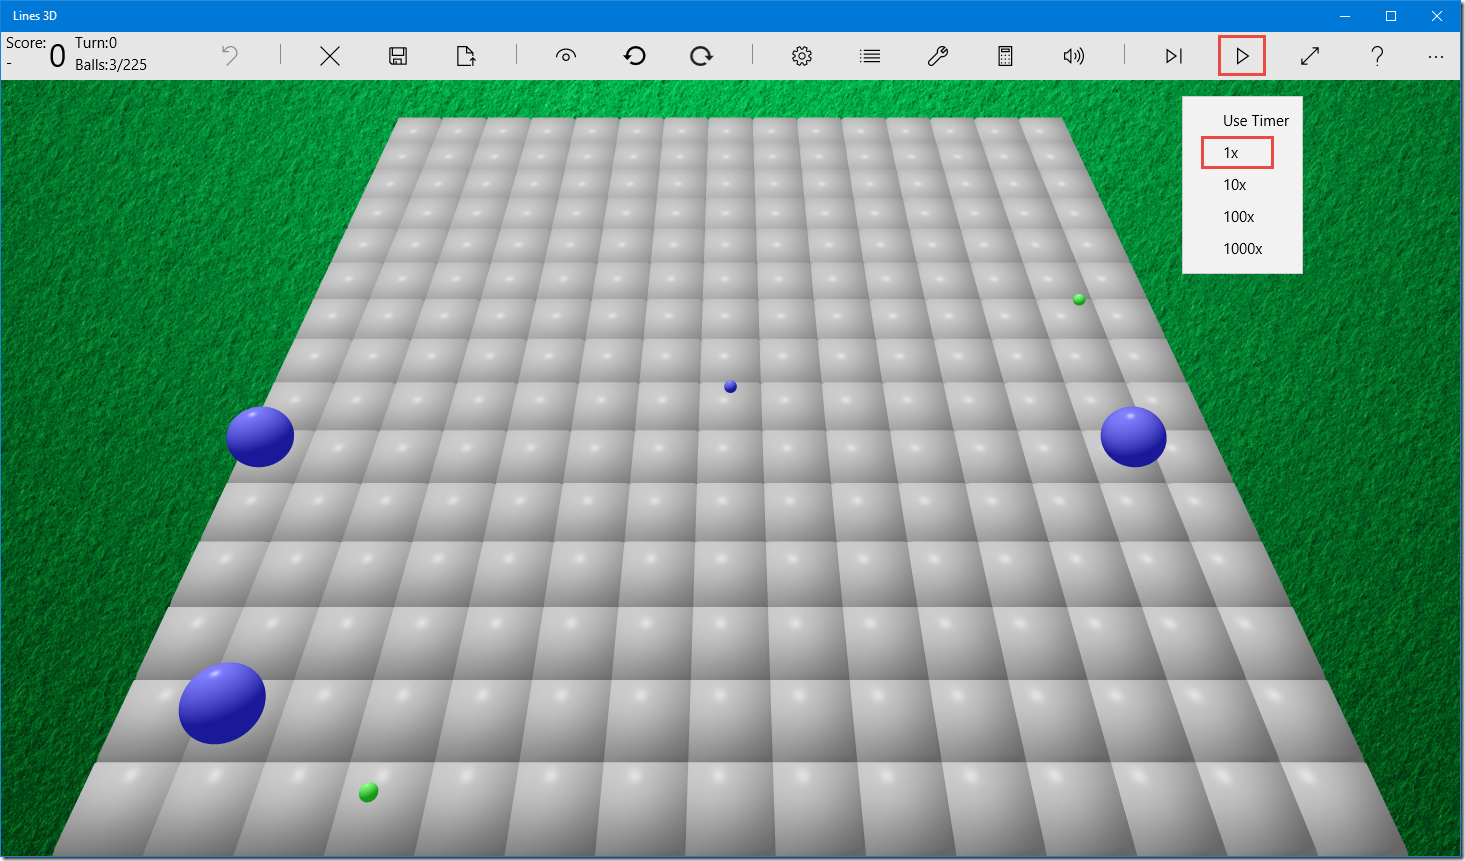 Lines 3D game auto-play mode